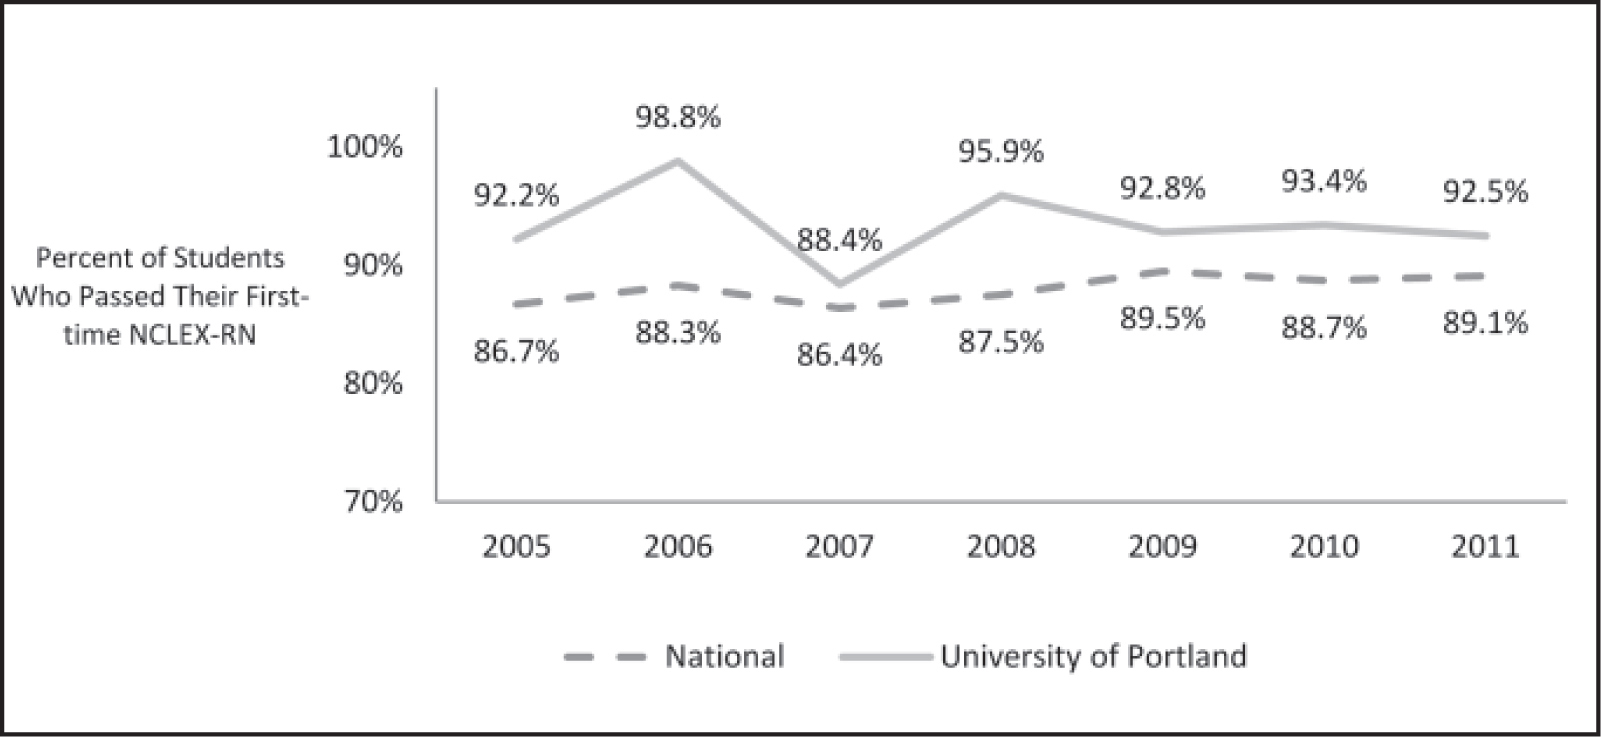 Percent of University of Portland students who passed their first-time NCLEX-RN (Nishioka et al., 2012). Reprinted with permission from the University of Portland School of Nursing.